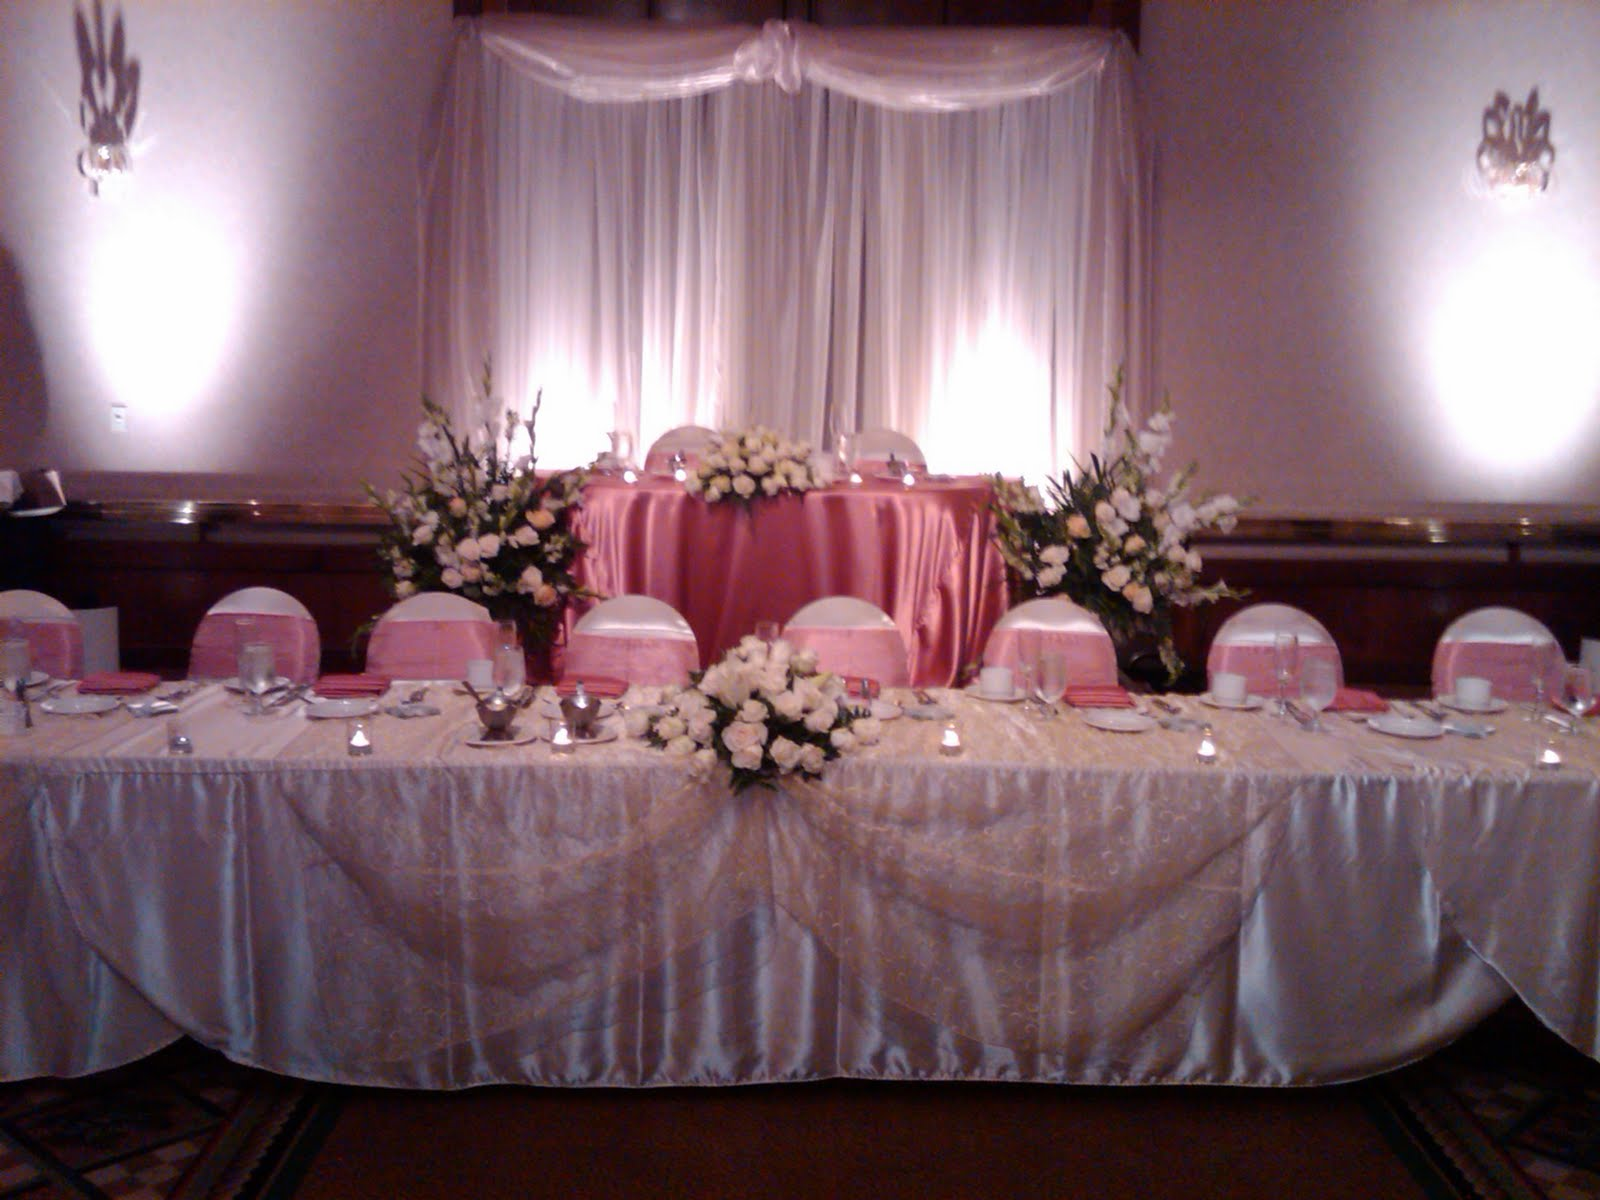 Flowers for All Occasions: Centerpiece and Head Table ...  Flowers for All...